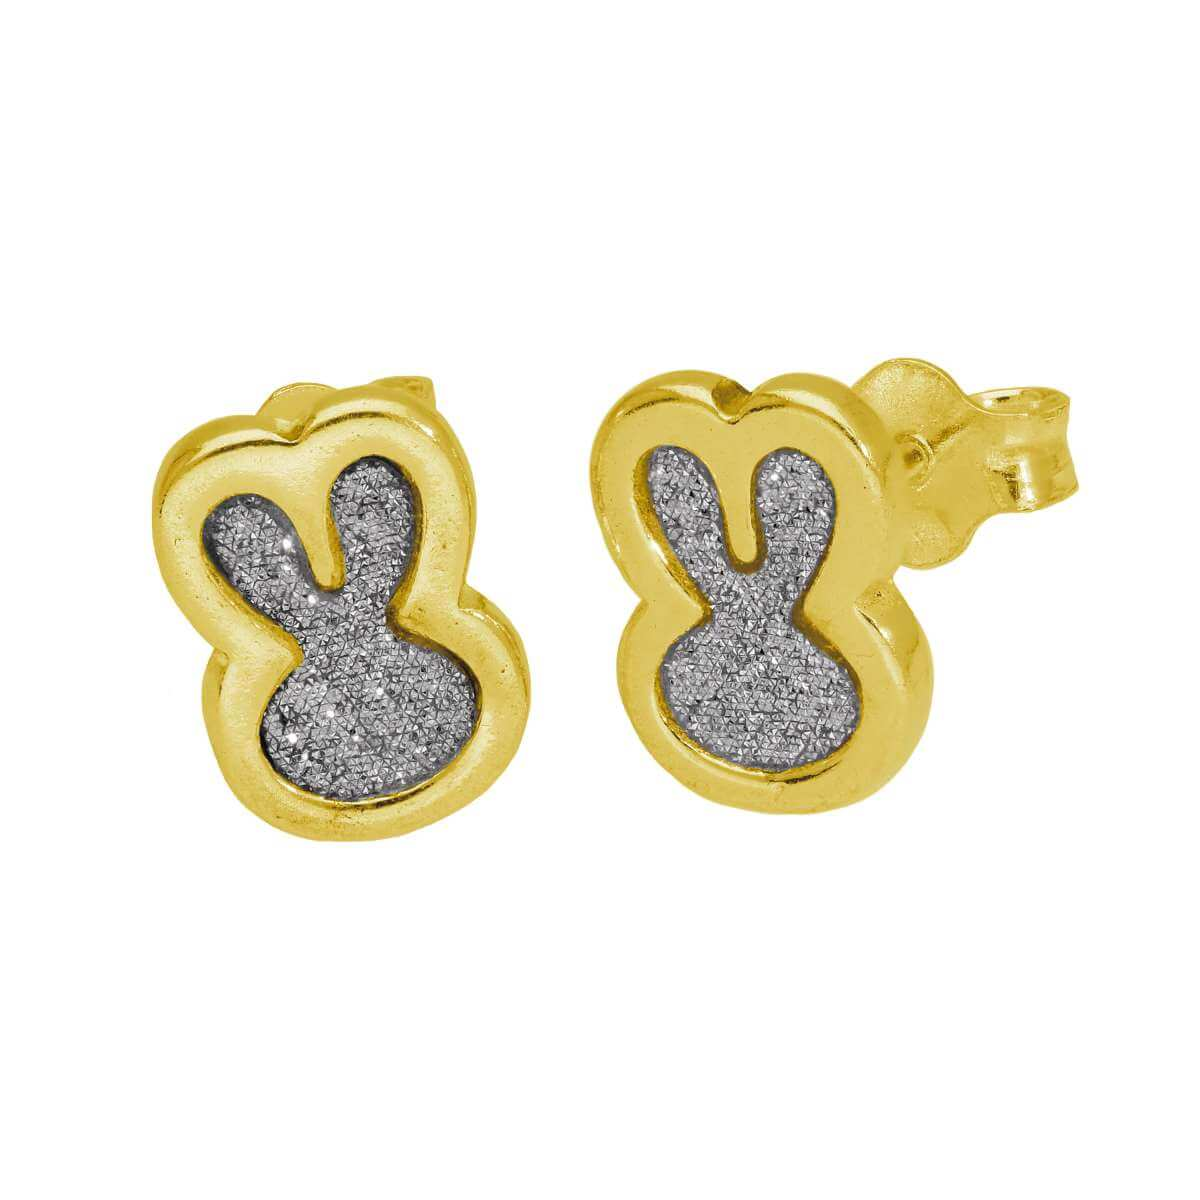 Gold Plated Sterling Silver Frosted Bunny Ears Stud Earrings